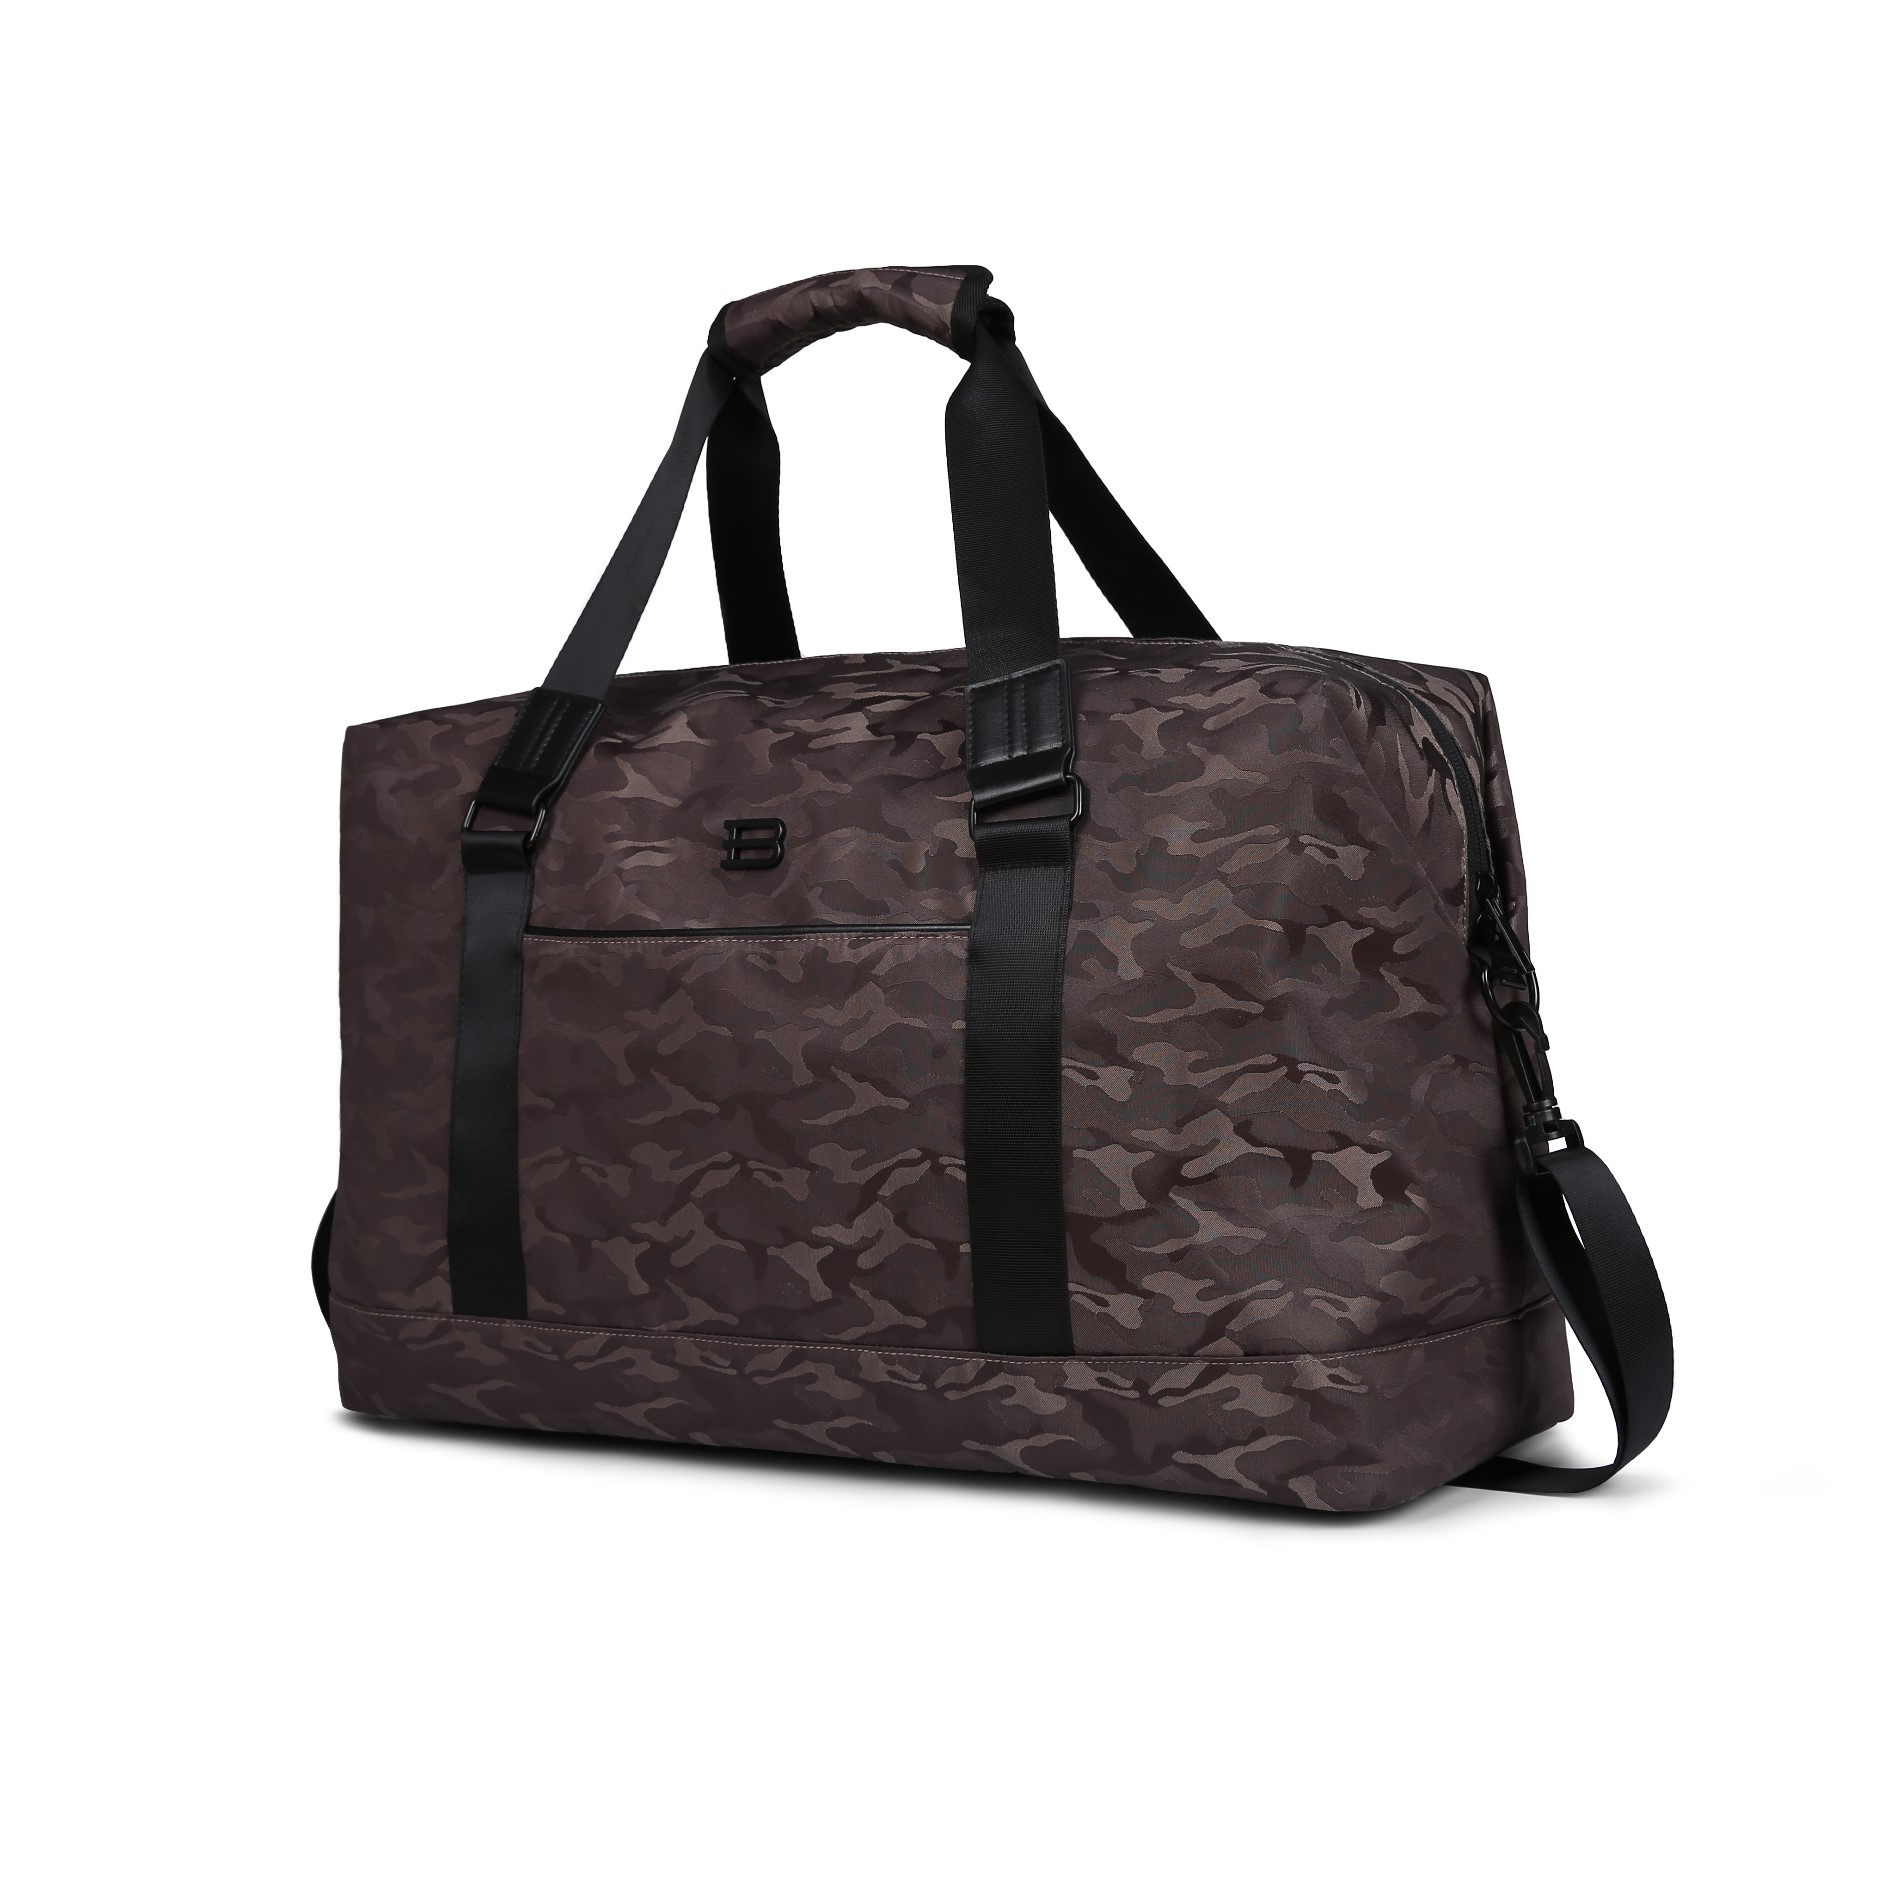 Travel Duffel Bag Manufacturers, Travel Duffel Bag Factory, Supply Travel Duffel Bag